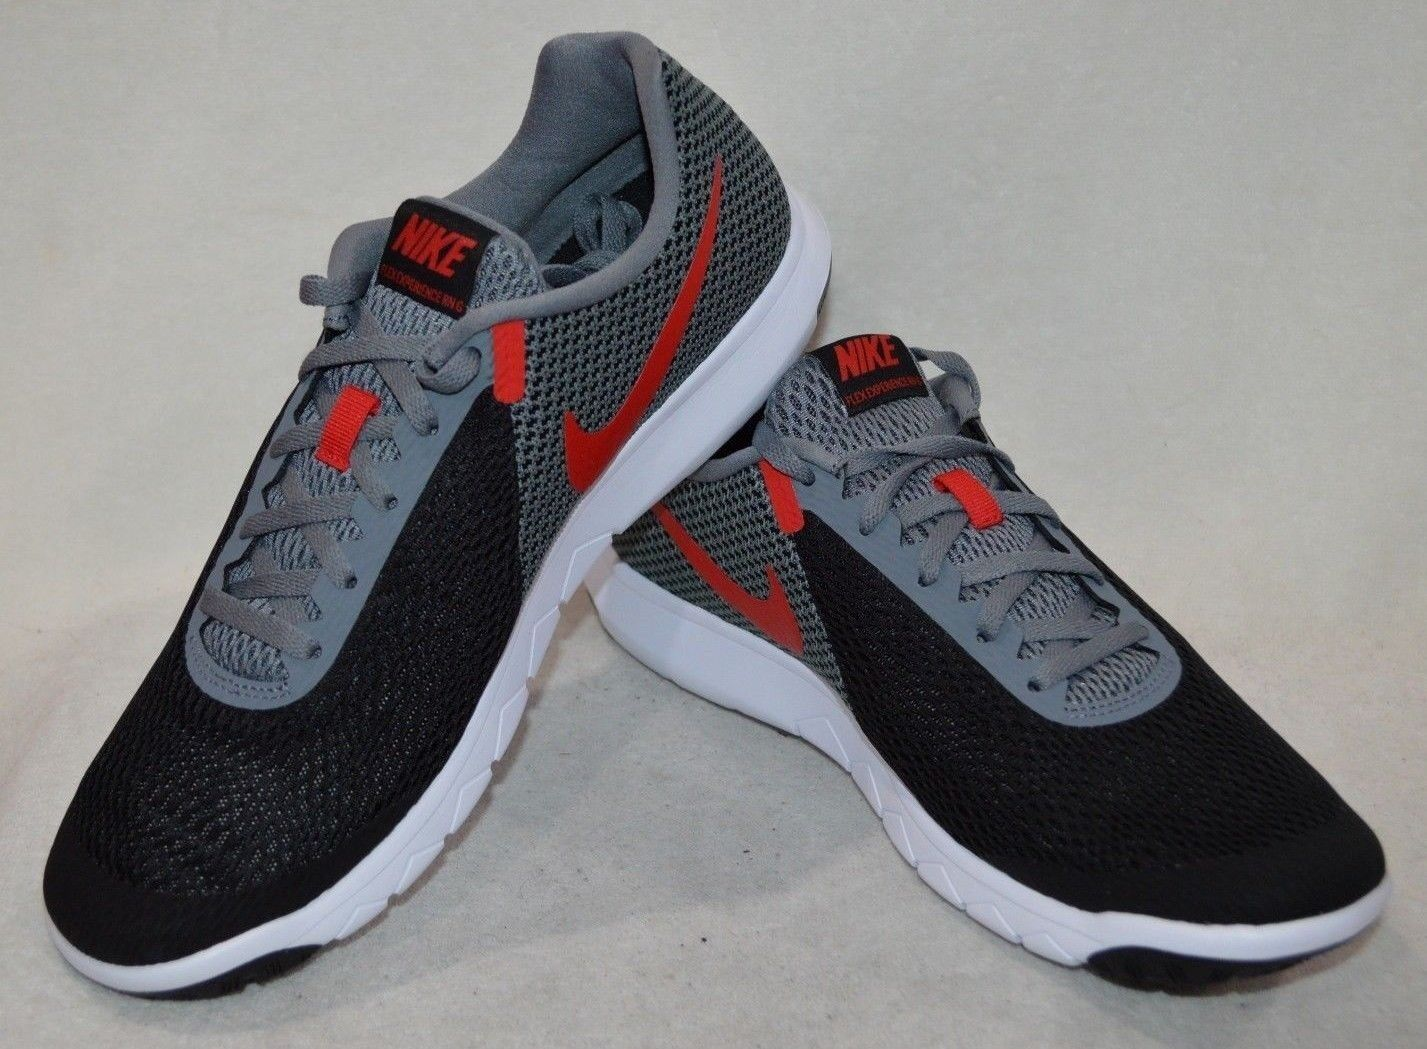 Nike Men's Flex Experience RN 6 Black Red Grey Running shoes-Assorted Sizes NWB